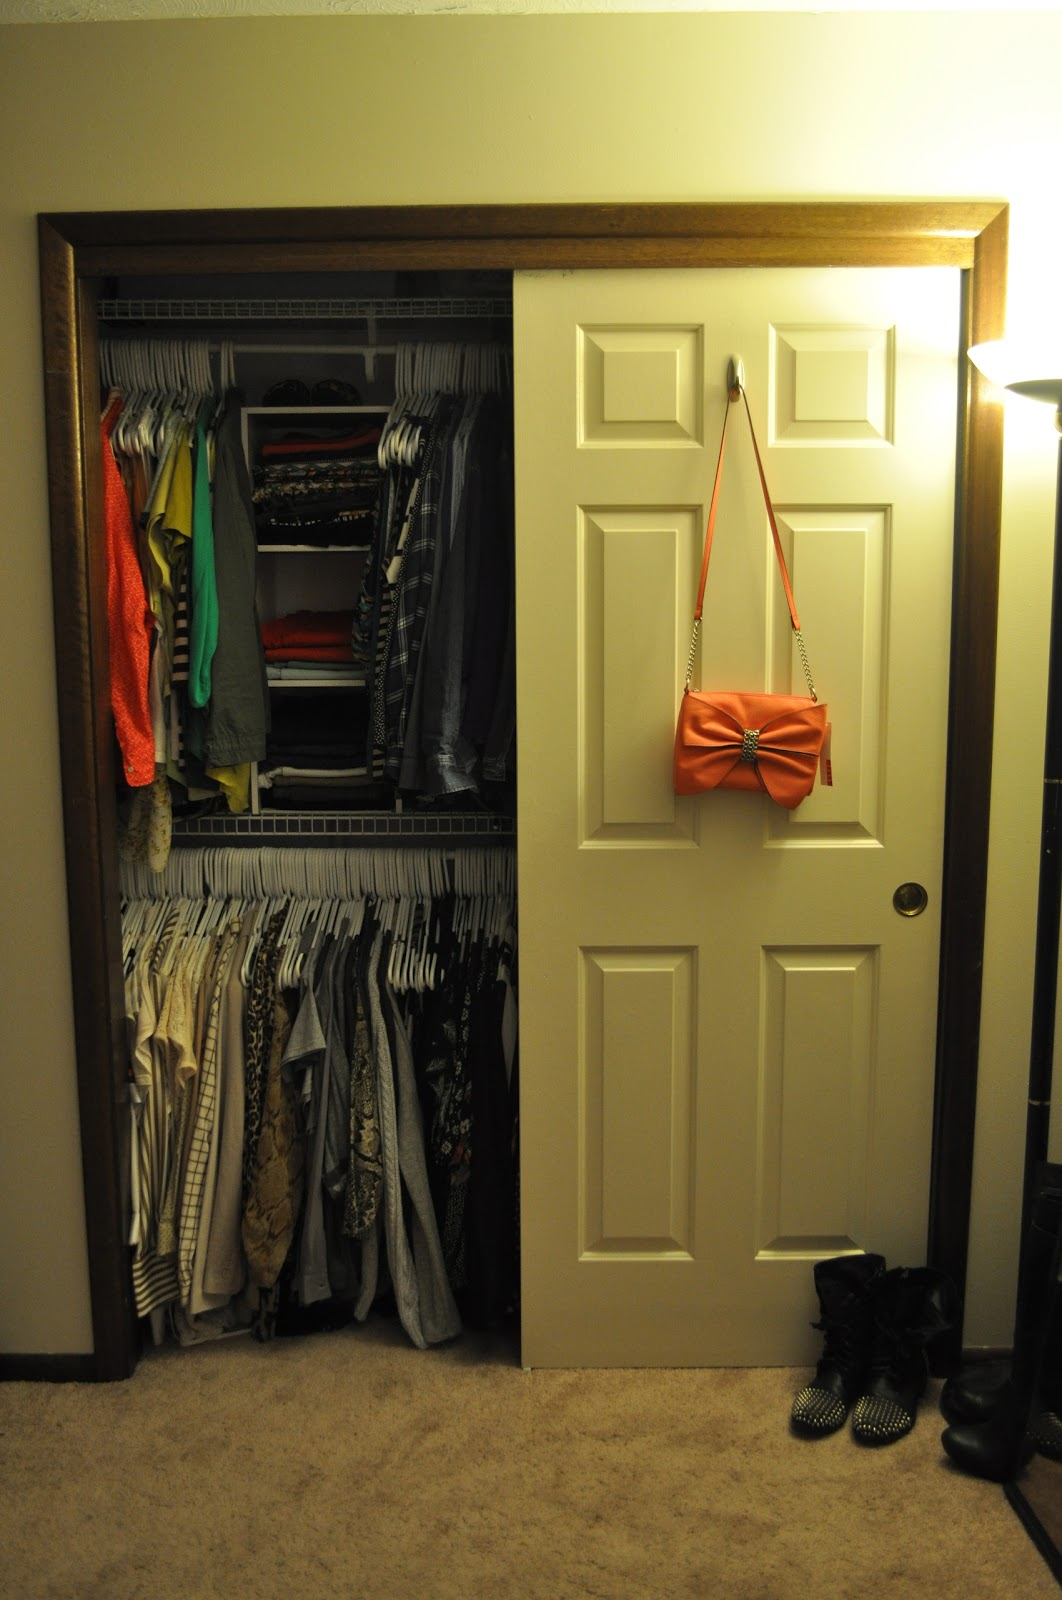 How To Maximize Your Limited Space And Organize Your